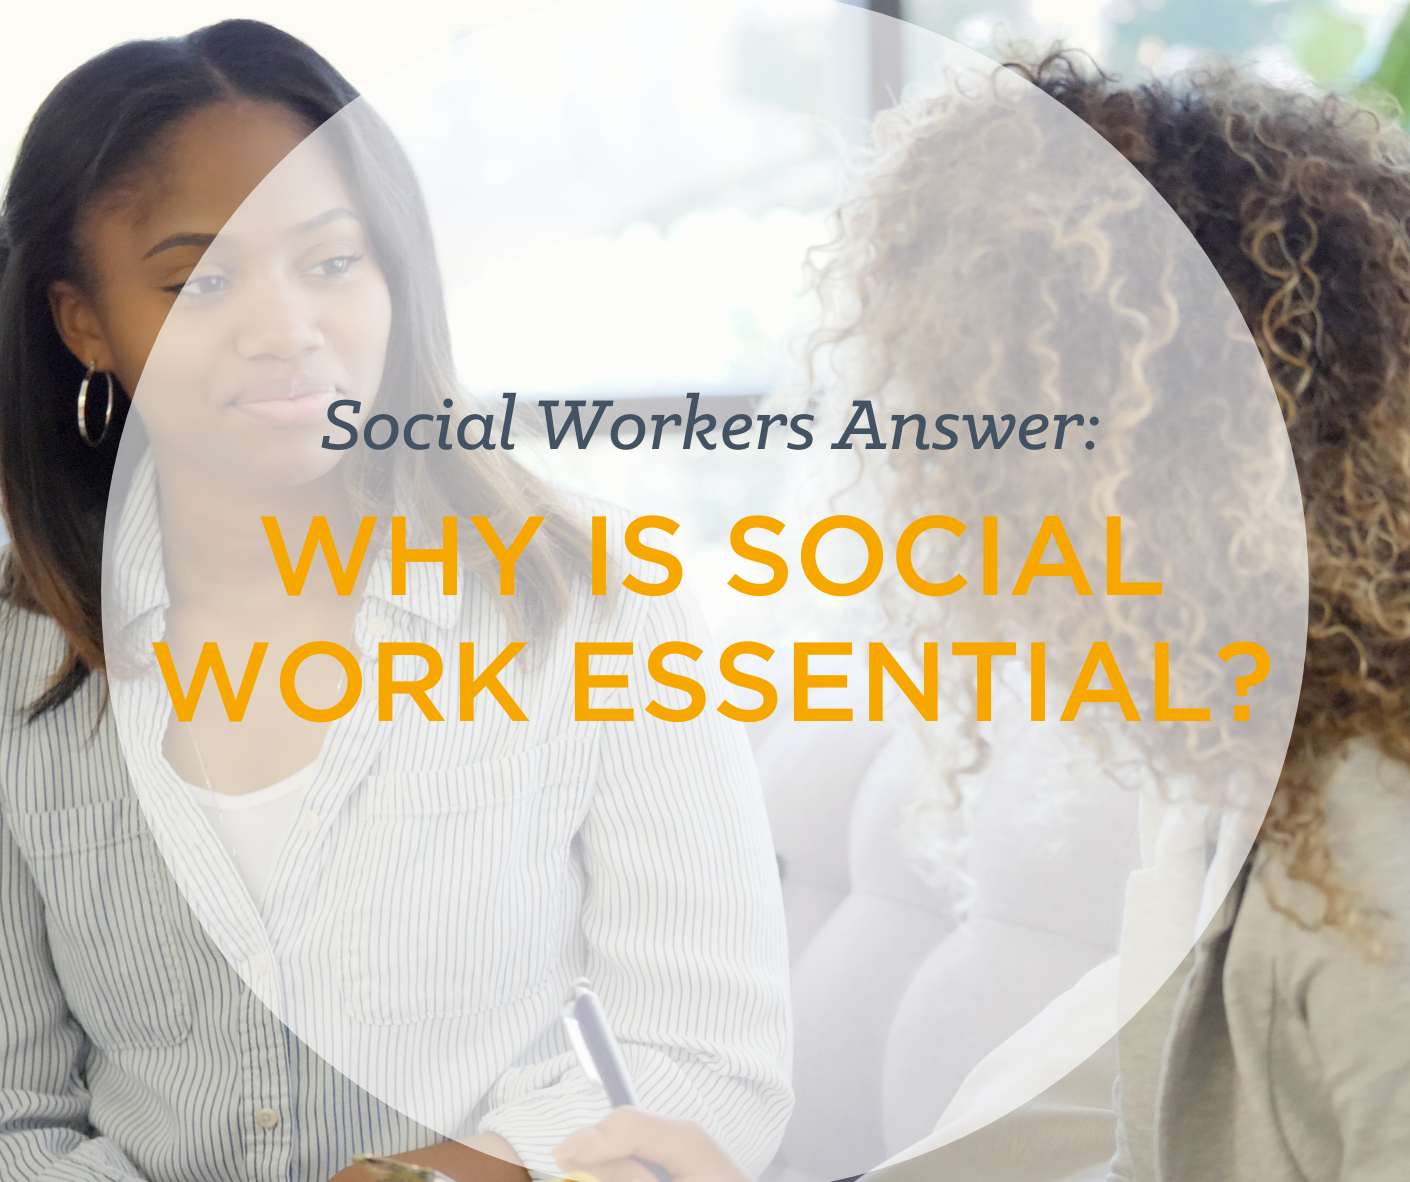 Social Workers Answer: Why is Social Work Essential?